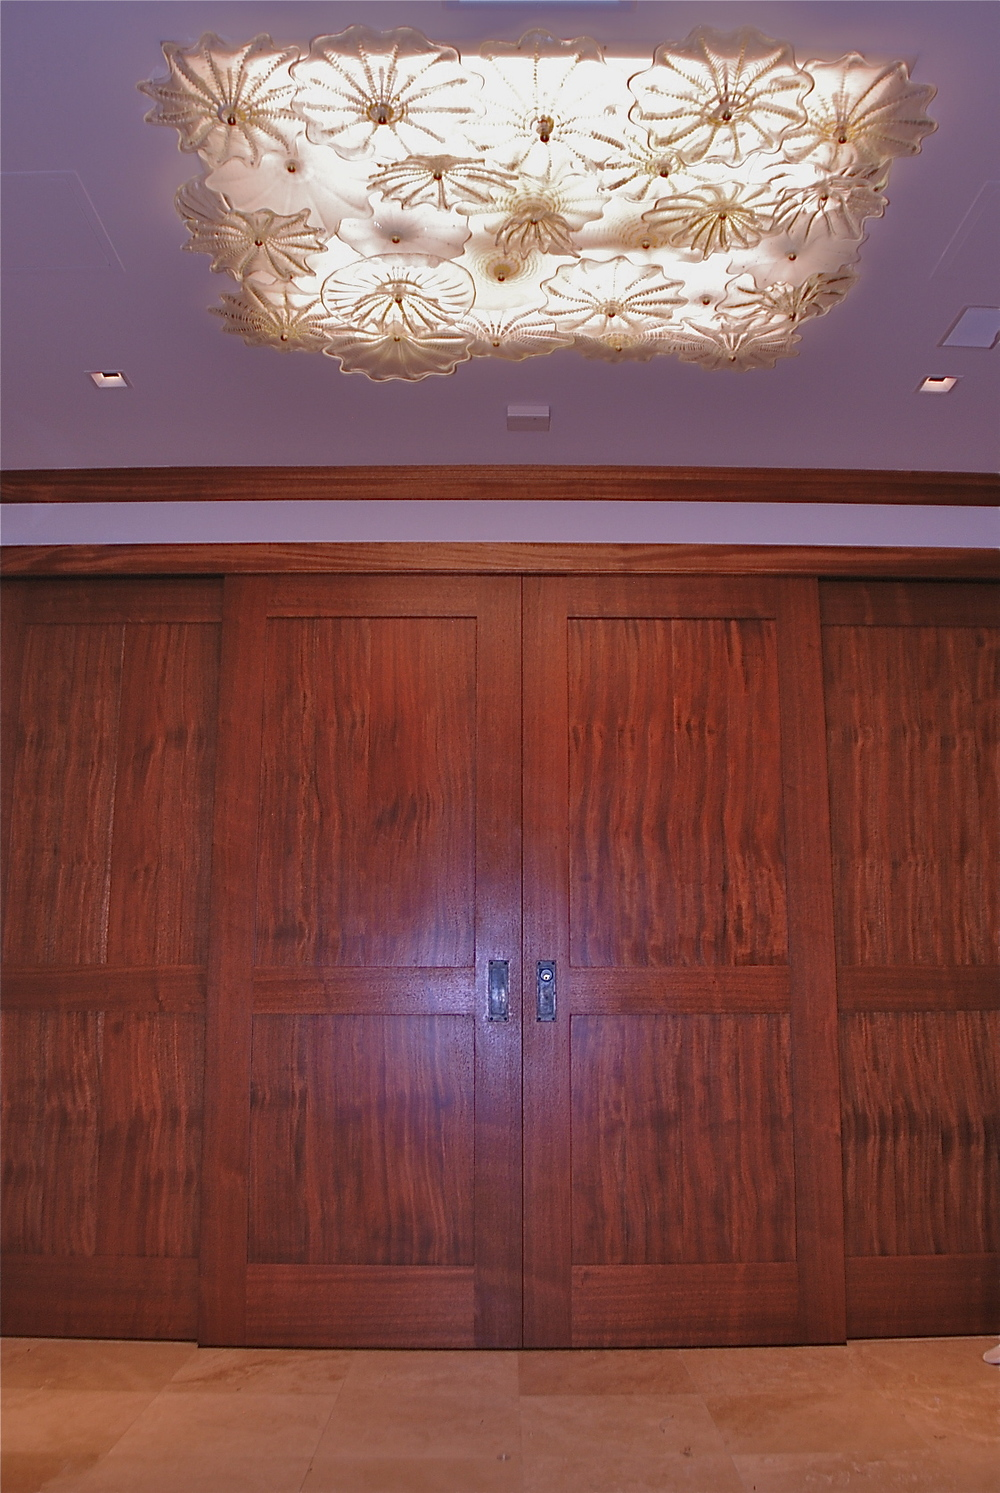 Overview, Master Foyer Ceiling Lamp, Oahu Residence